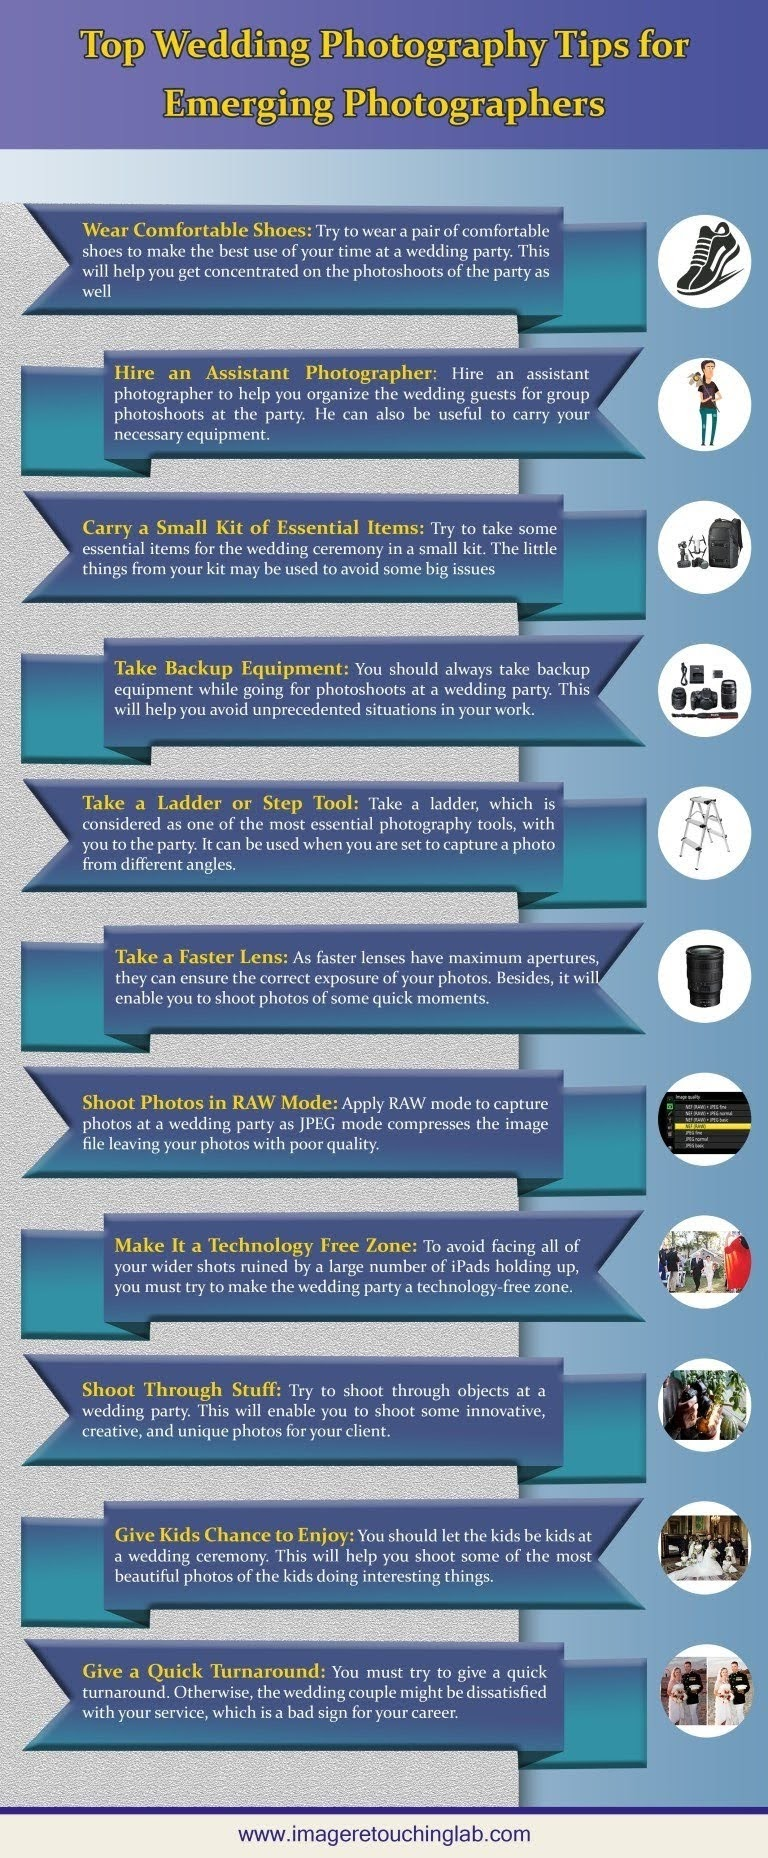 Top Wedding Photography Tips for Emerging Photographers #infographic